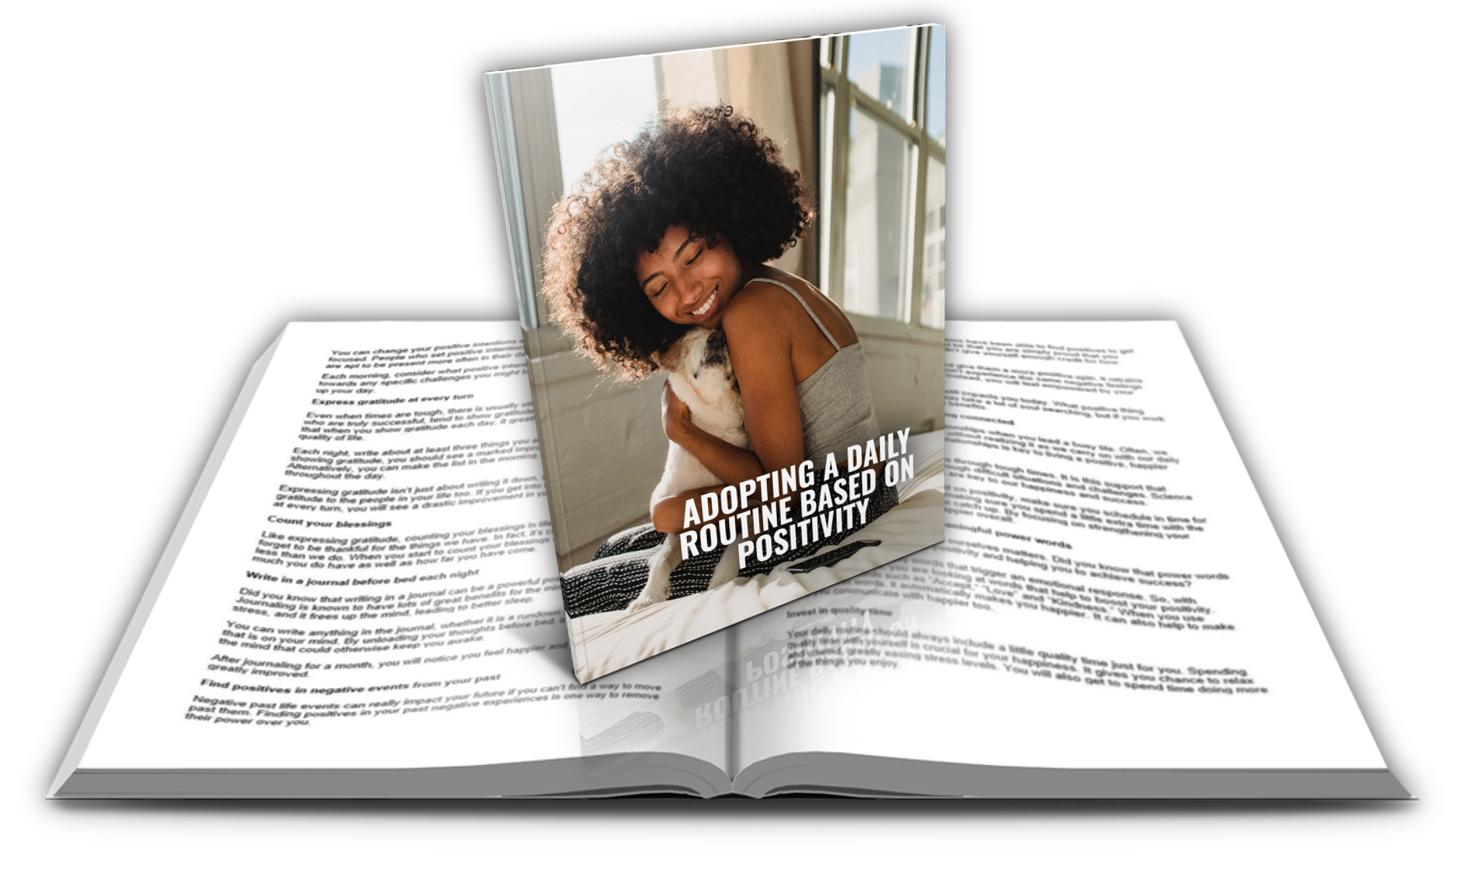 Adopting a Daily Routine Based on Positivity PLR Report